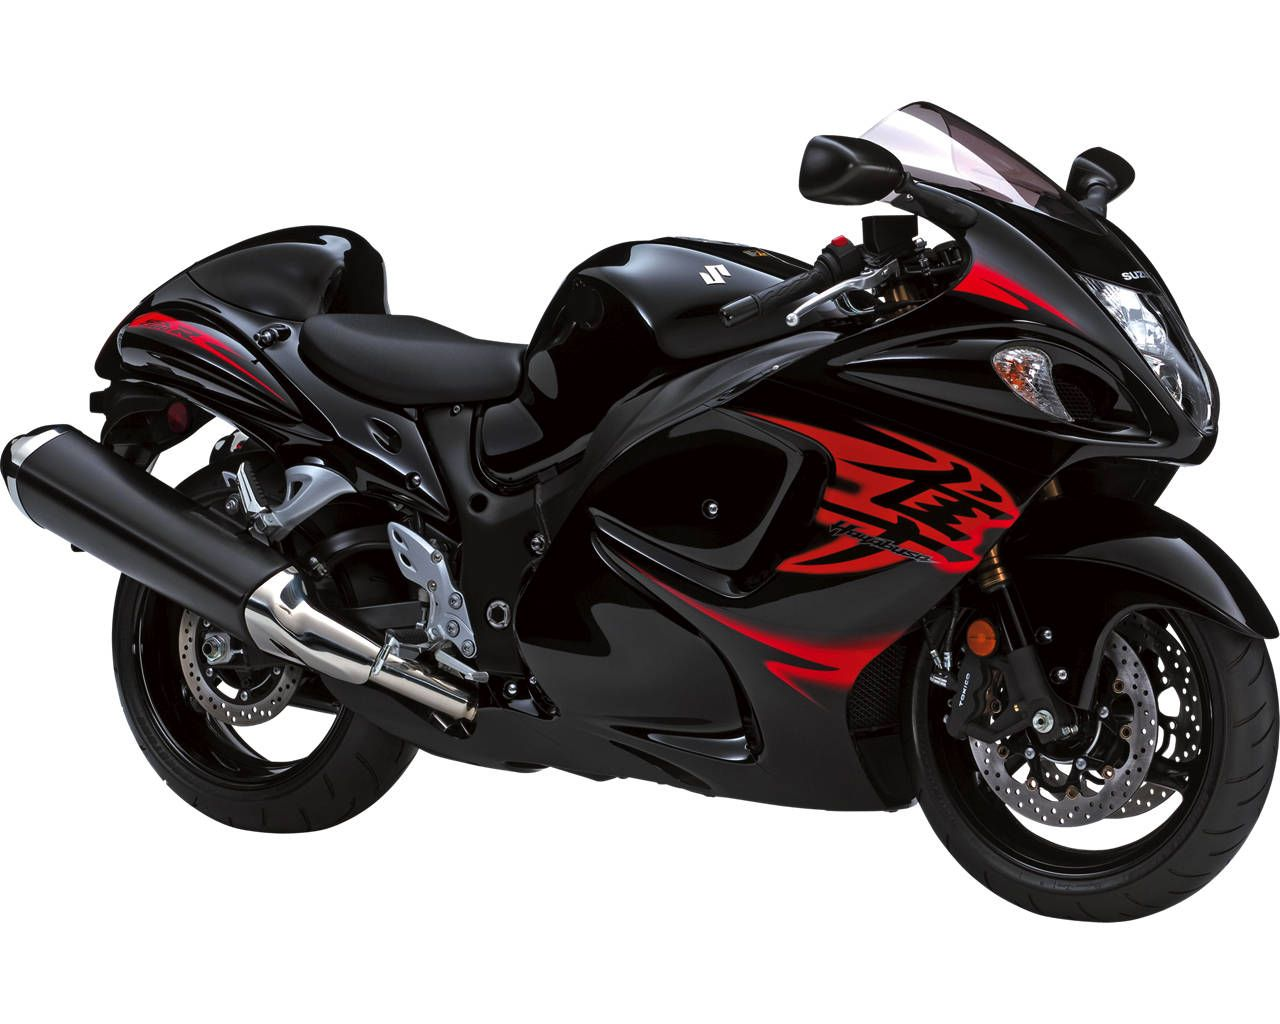 Superieur Motorcycles | The 2011 Suzuki Hayabusa, Seen Here In Pearl Nebular Black  With Red .